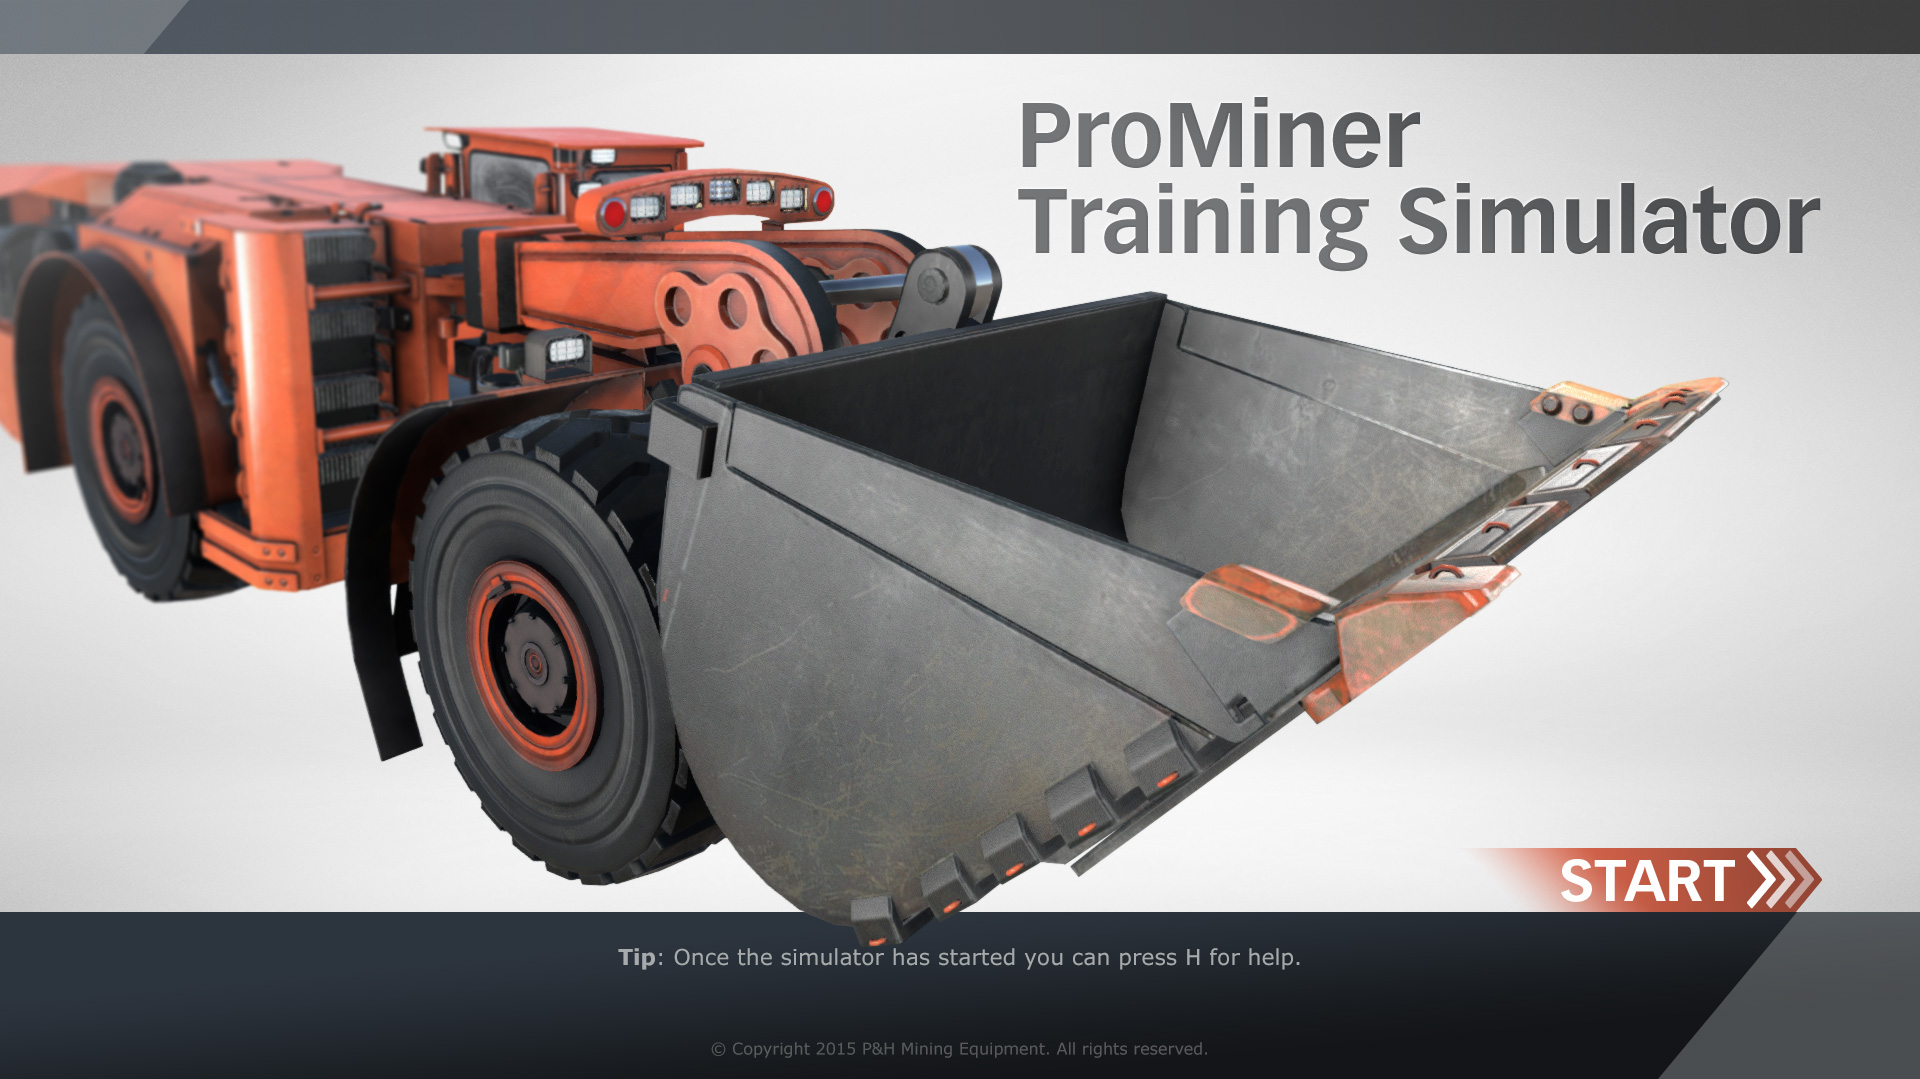 ProMiner Training Simulator